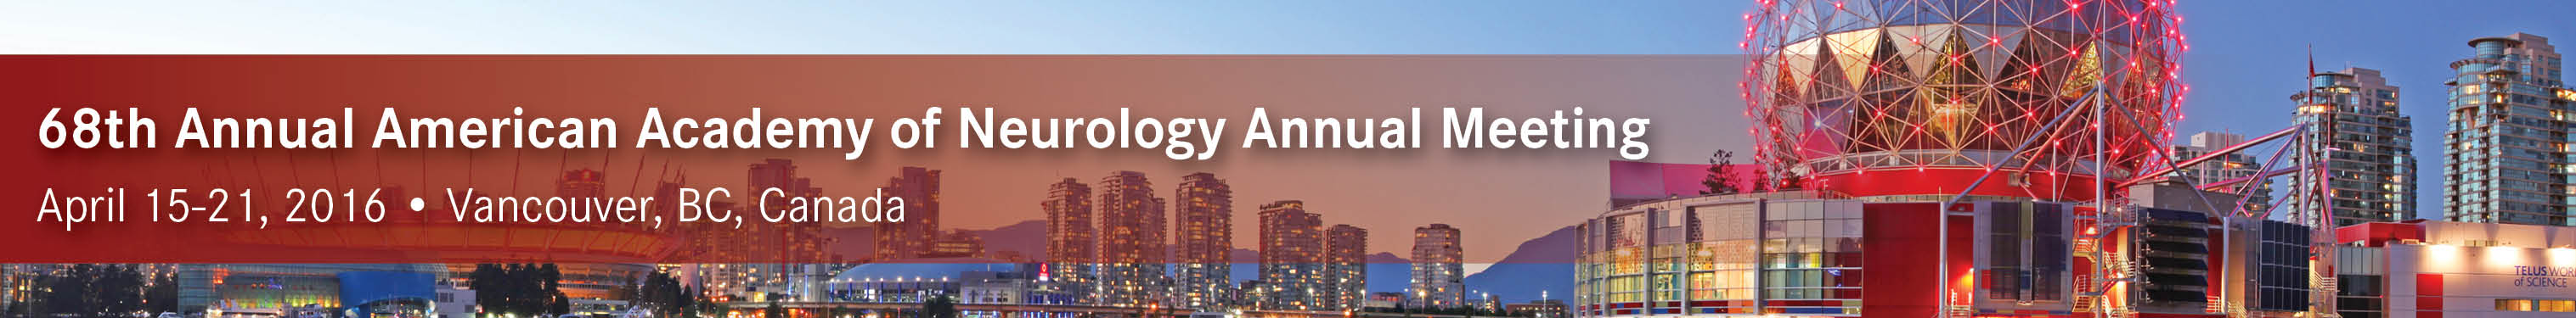 68th American Academy of Neurology Annual Meeting